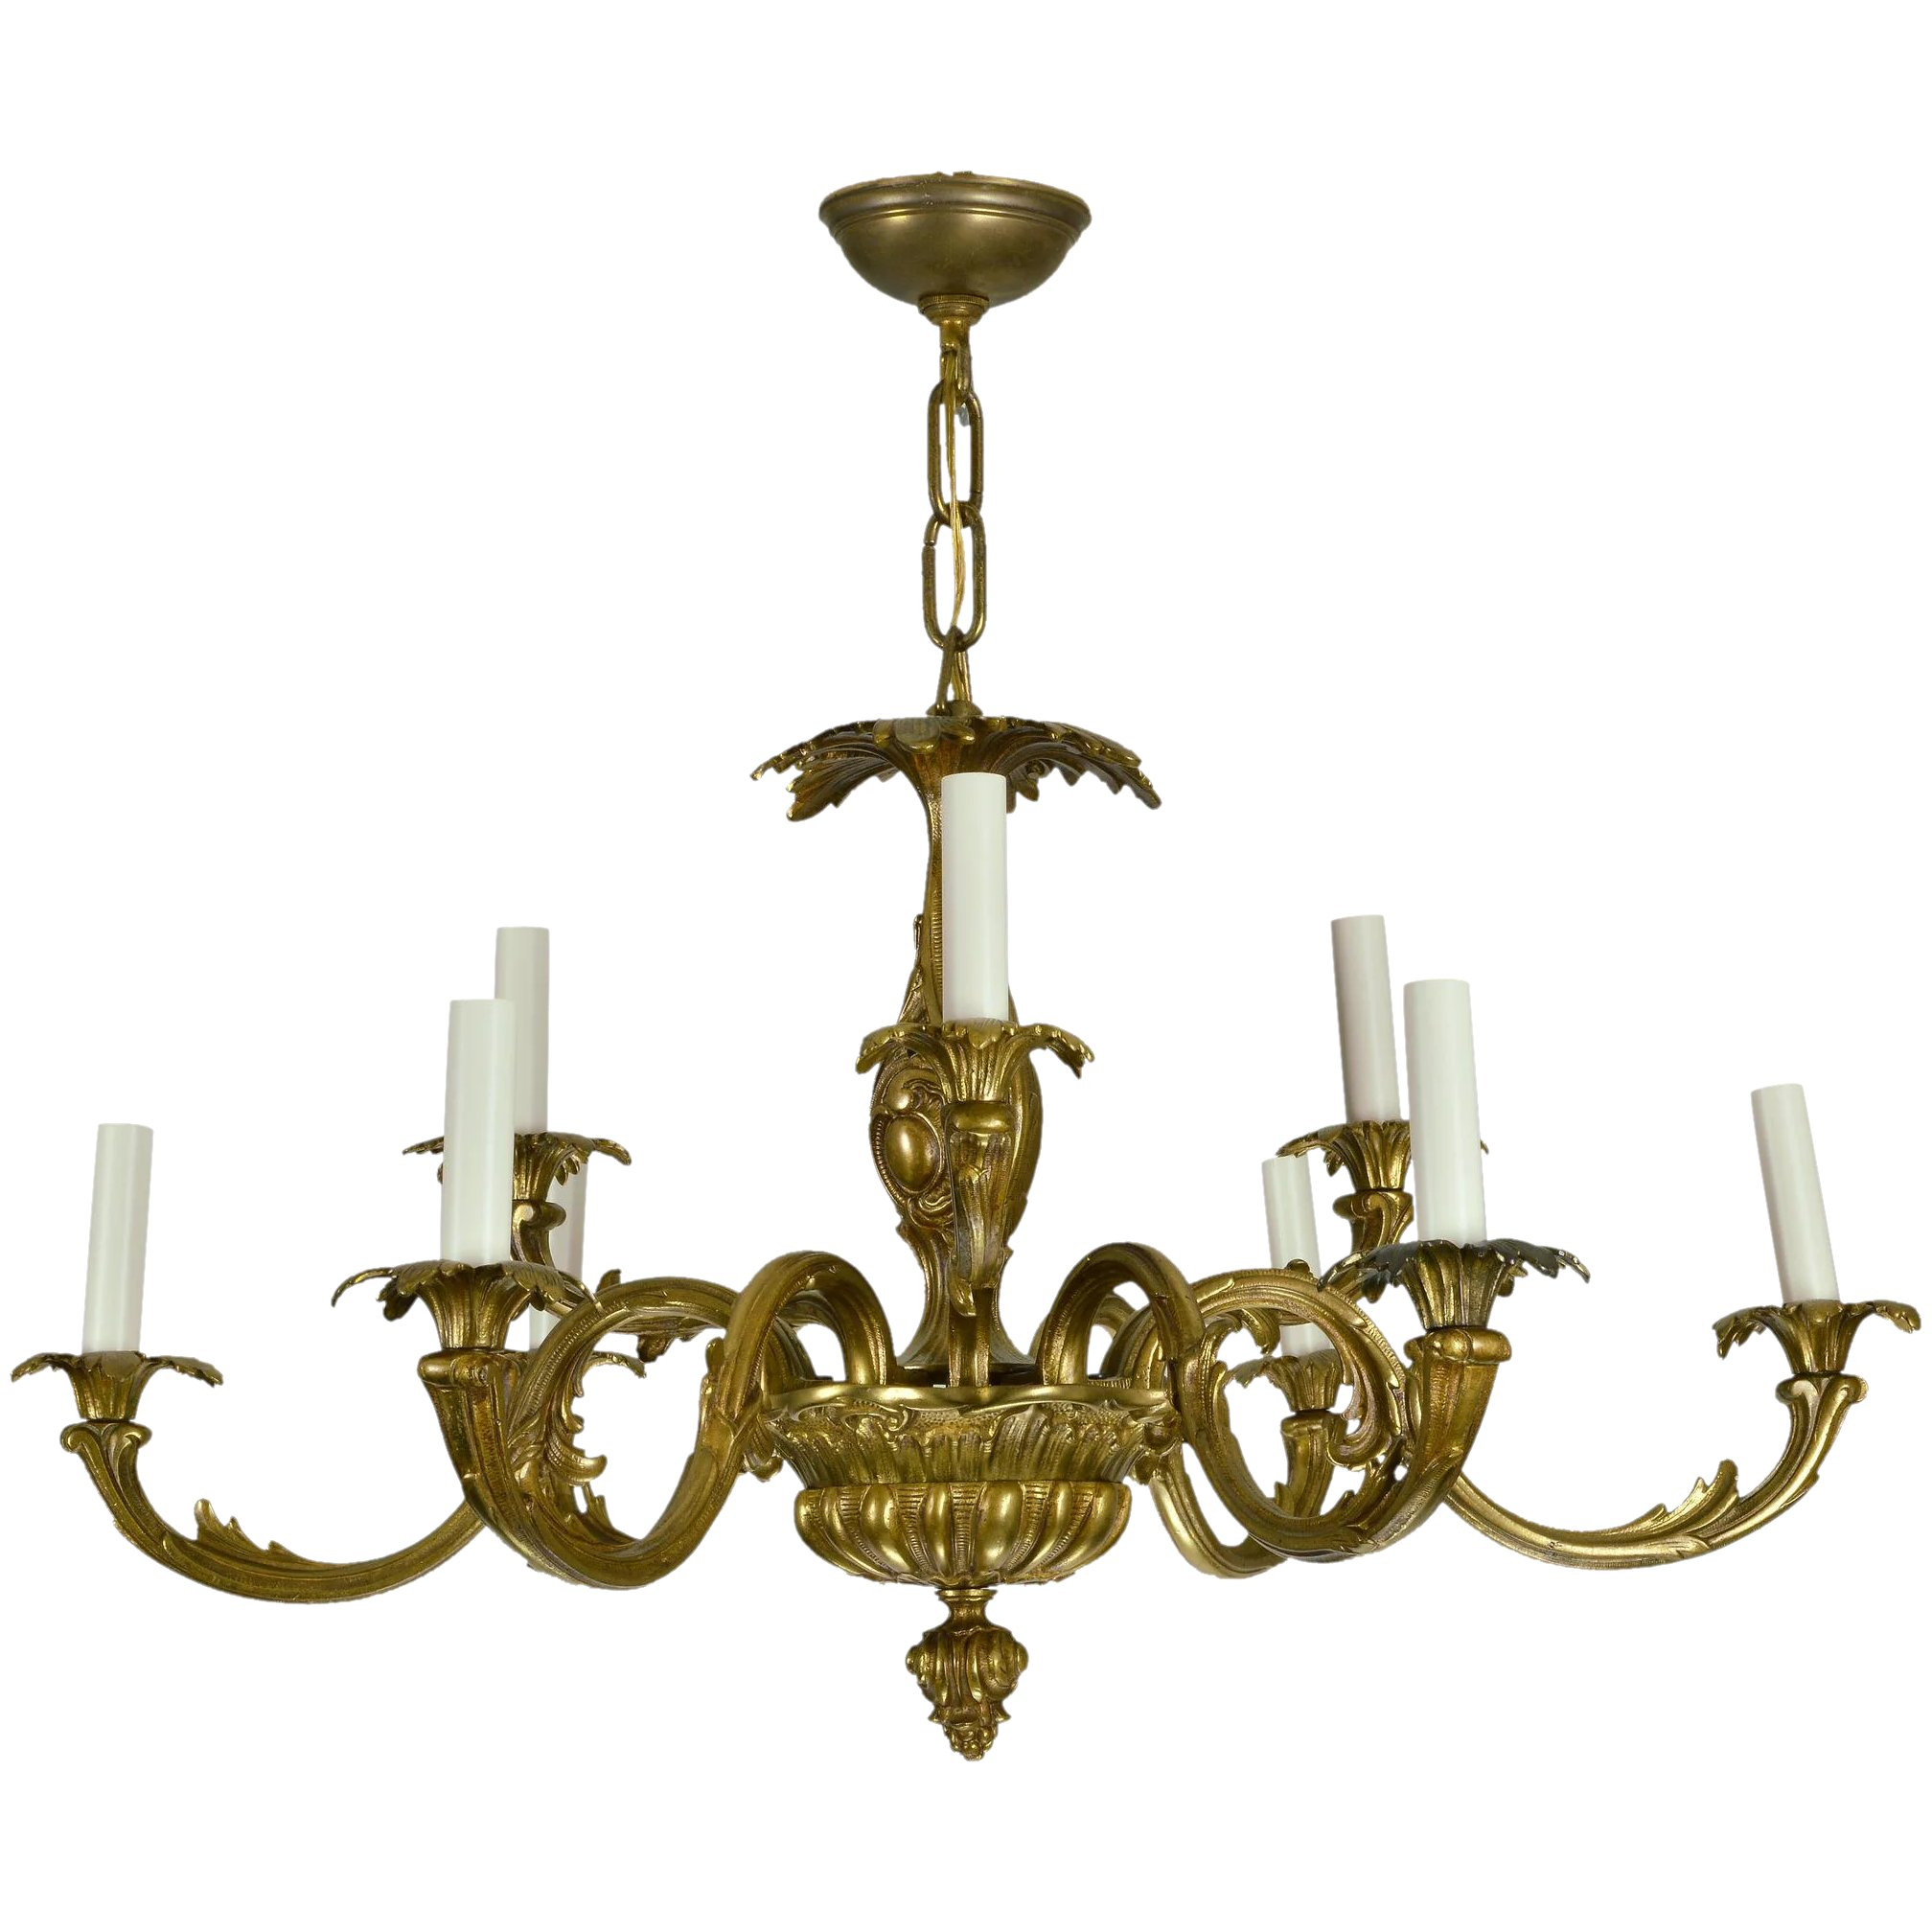 Vintage brass french baroque chandelier sold ruby lane vintage brass french baroque chandelier click to expand aloadofball Image collections